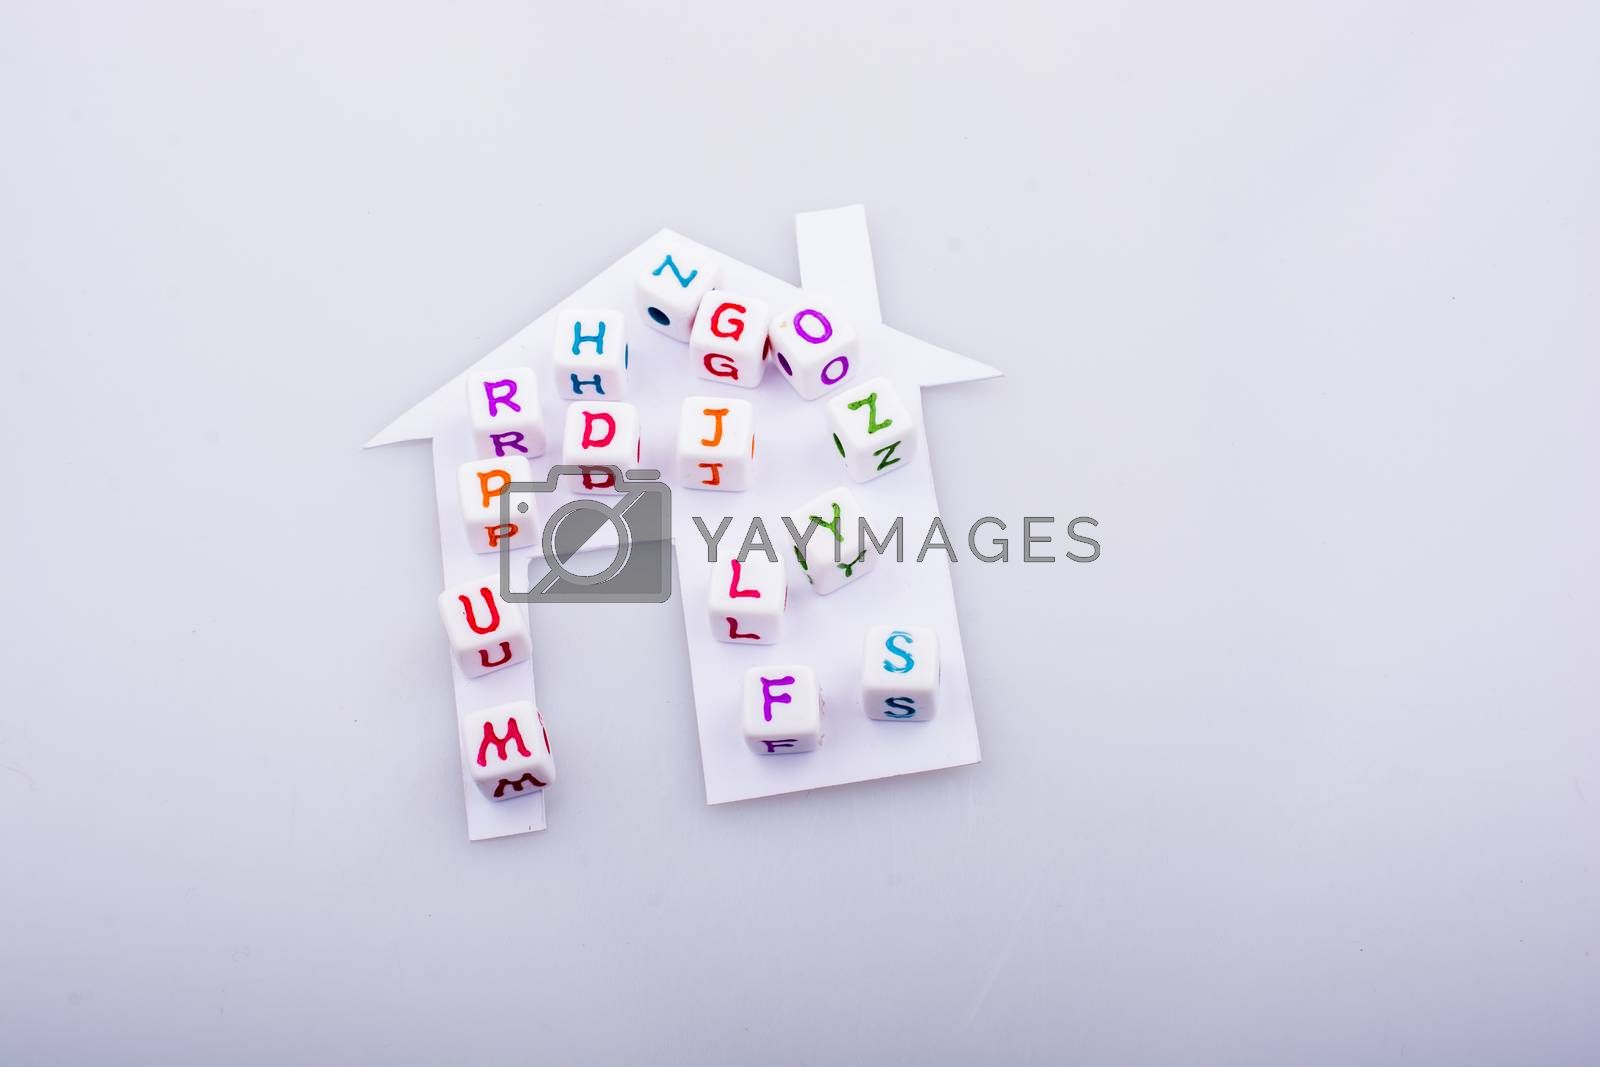 Letter cubes on house shape cut out of paper